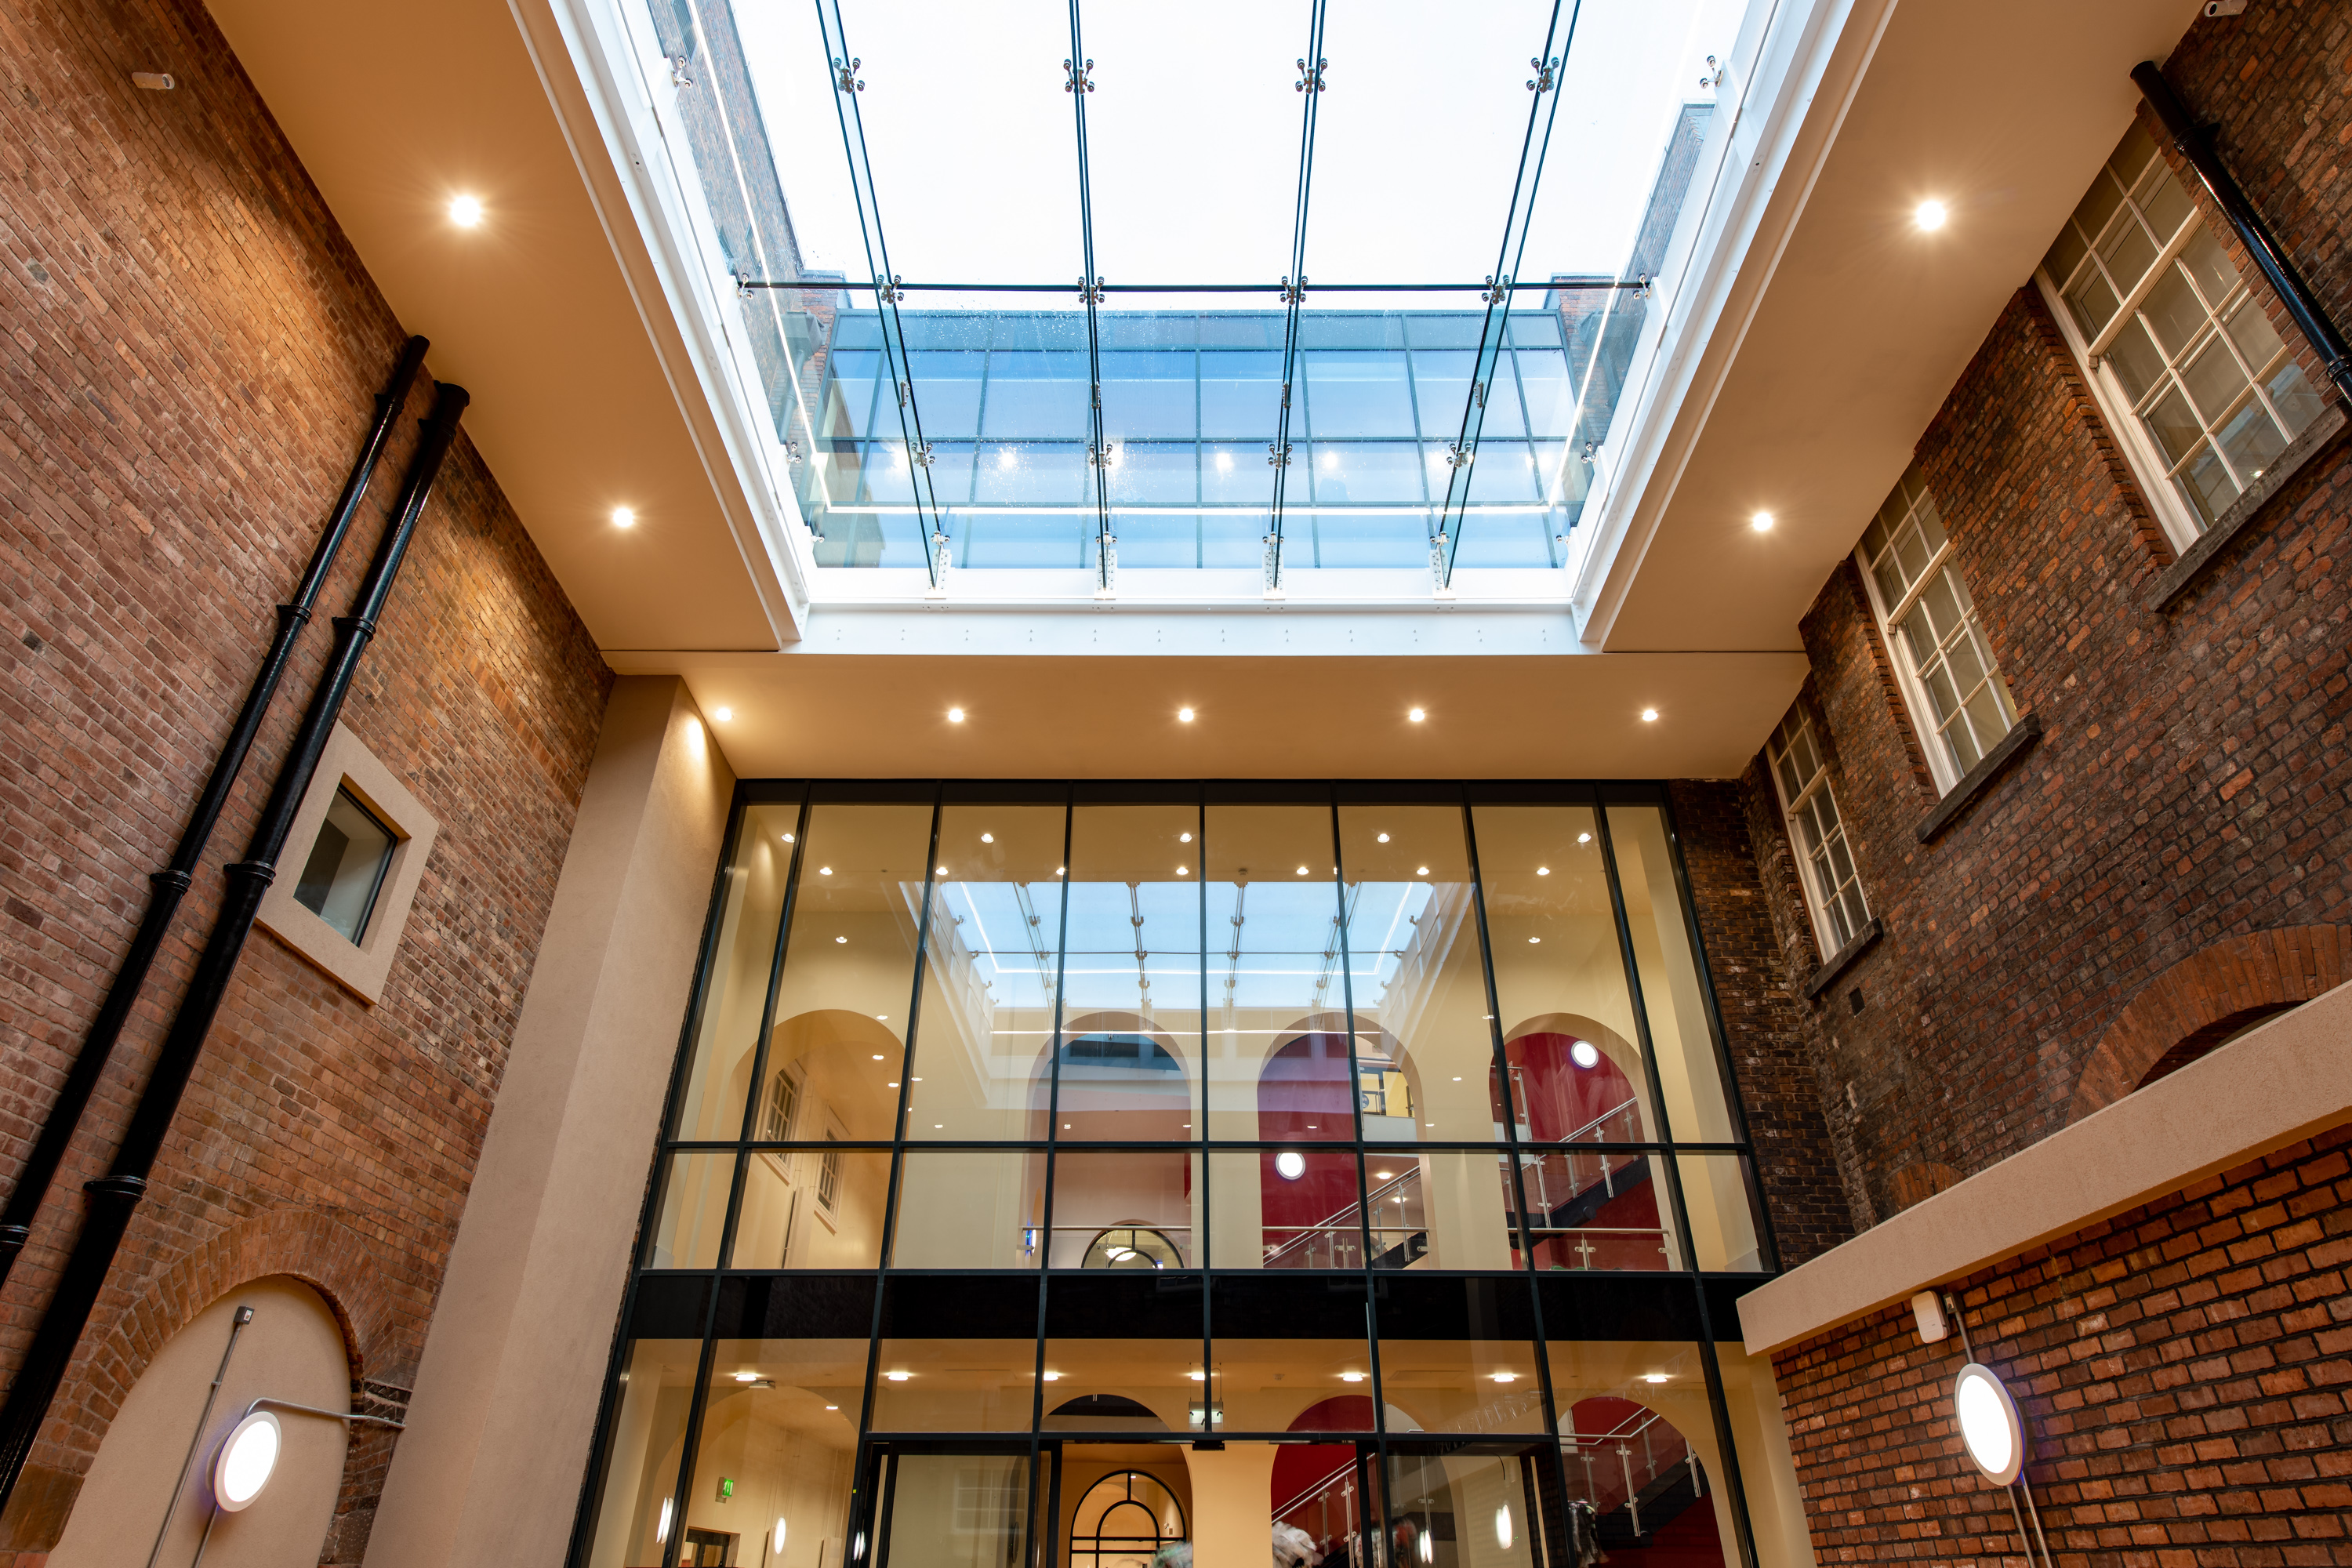 British Glass member Pilkington UK has helped transform the courtyard at the Liverpool Institute for Performing Arts